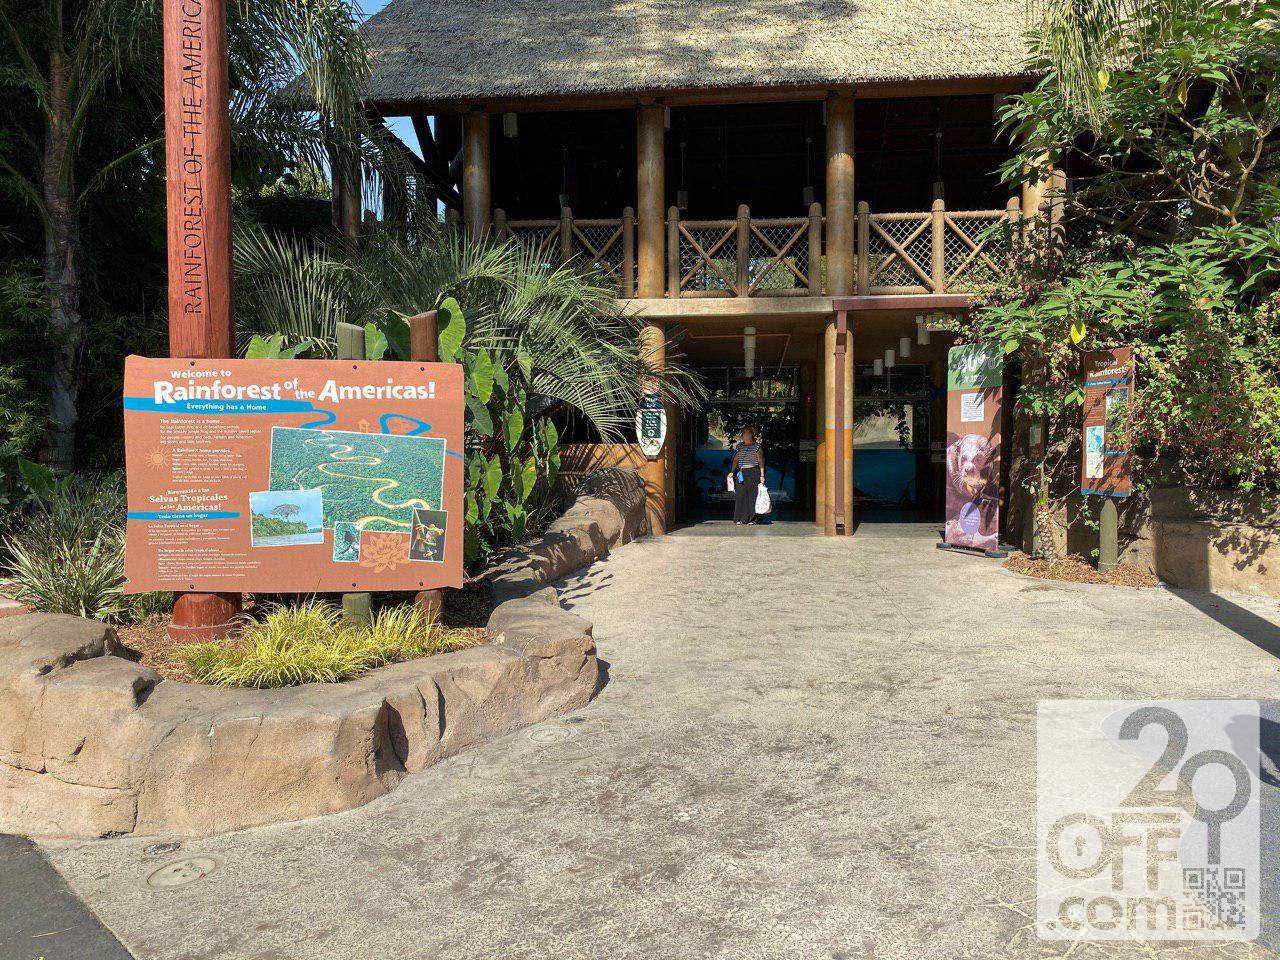 Los Angeles Zoo Rainforest of the Americas 2019